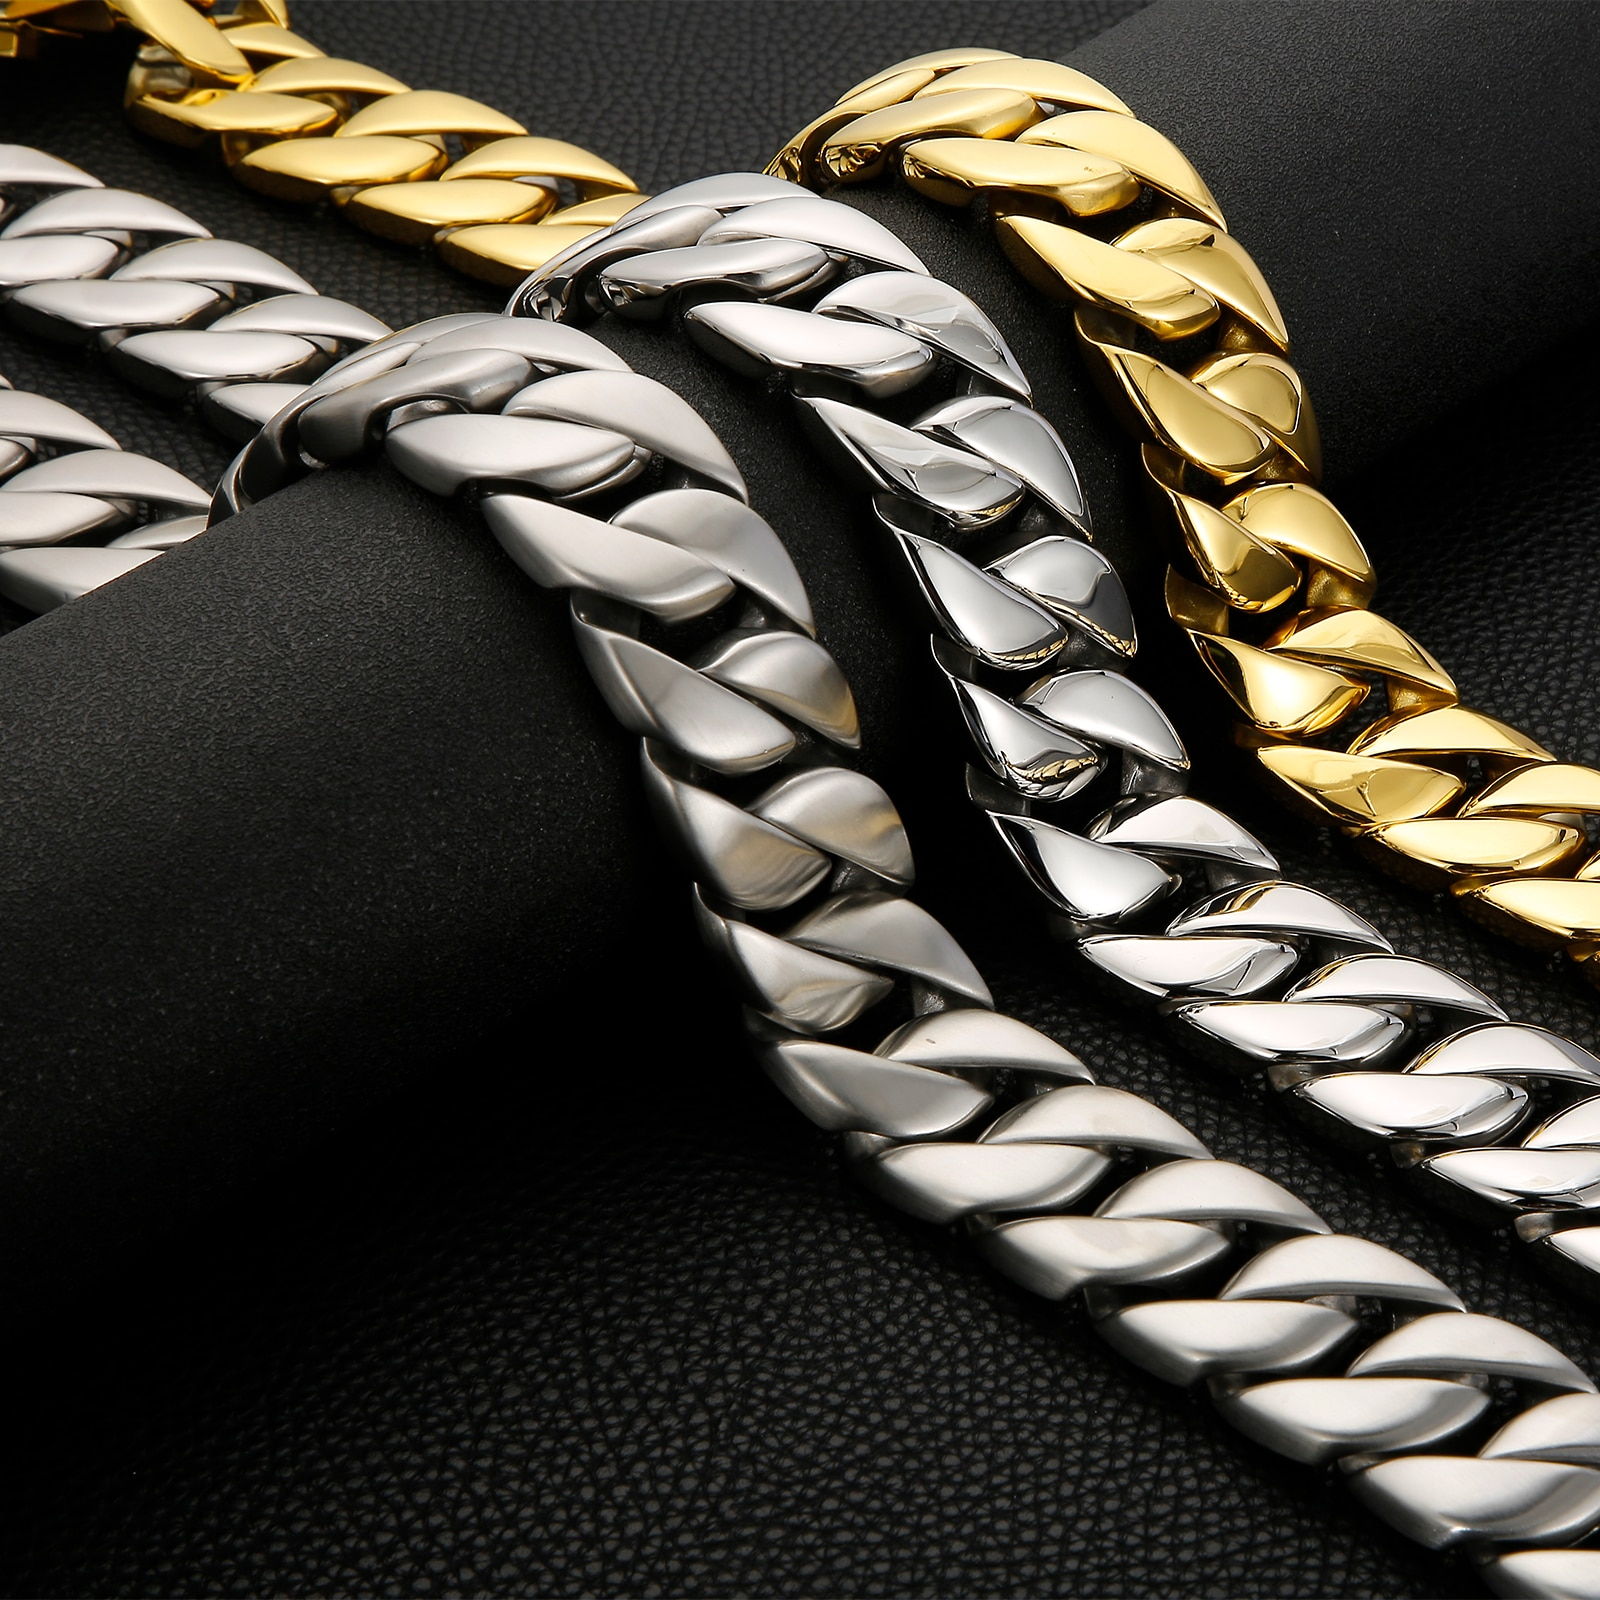 31mm Male Necklaces Cuba Heavy Link Chain Necklace HipHop Thick Gold Curb Chain For Men Polished Stainless Steel Jewelry